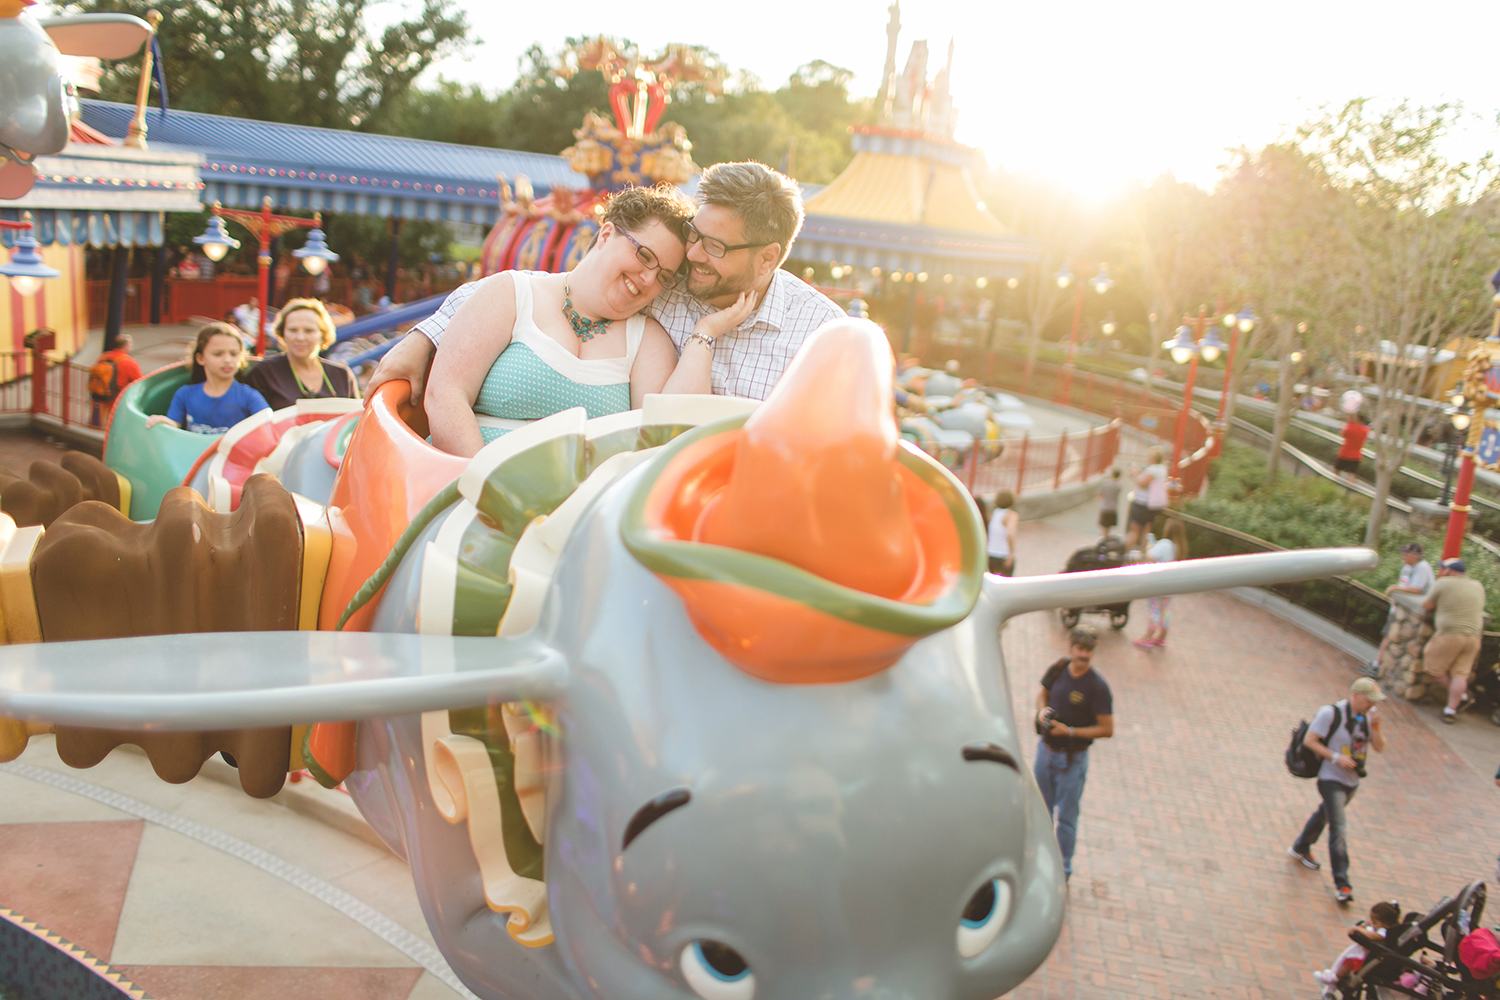 Jaime DiOrio - Disney World Engagement Photo - Orlando Wedding Photographer - Orlando Engagement Photographer - Magic Kingdom Engagement Session - Couple on Dumbo ride at Disney - Disney Anniversary photos.jpg